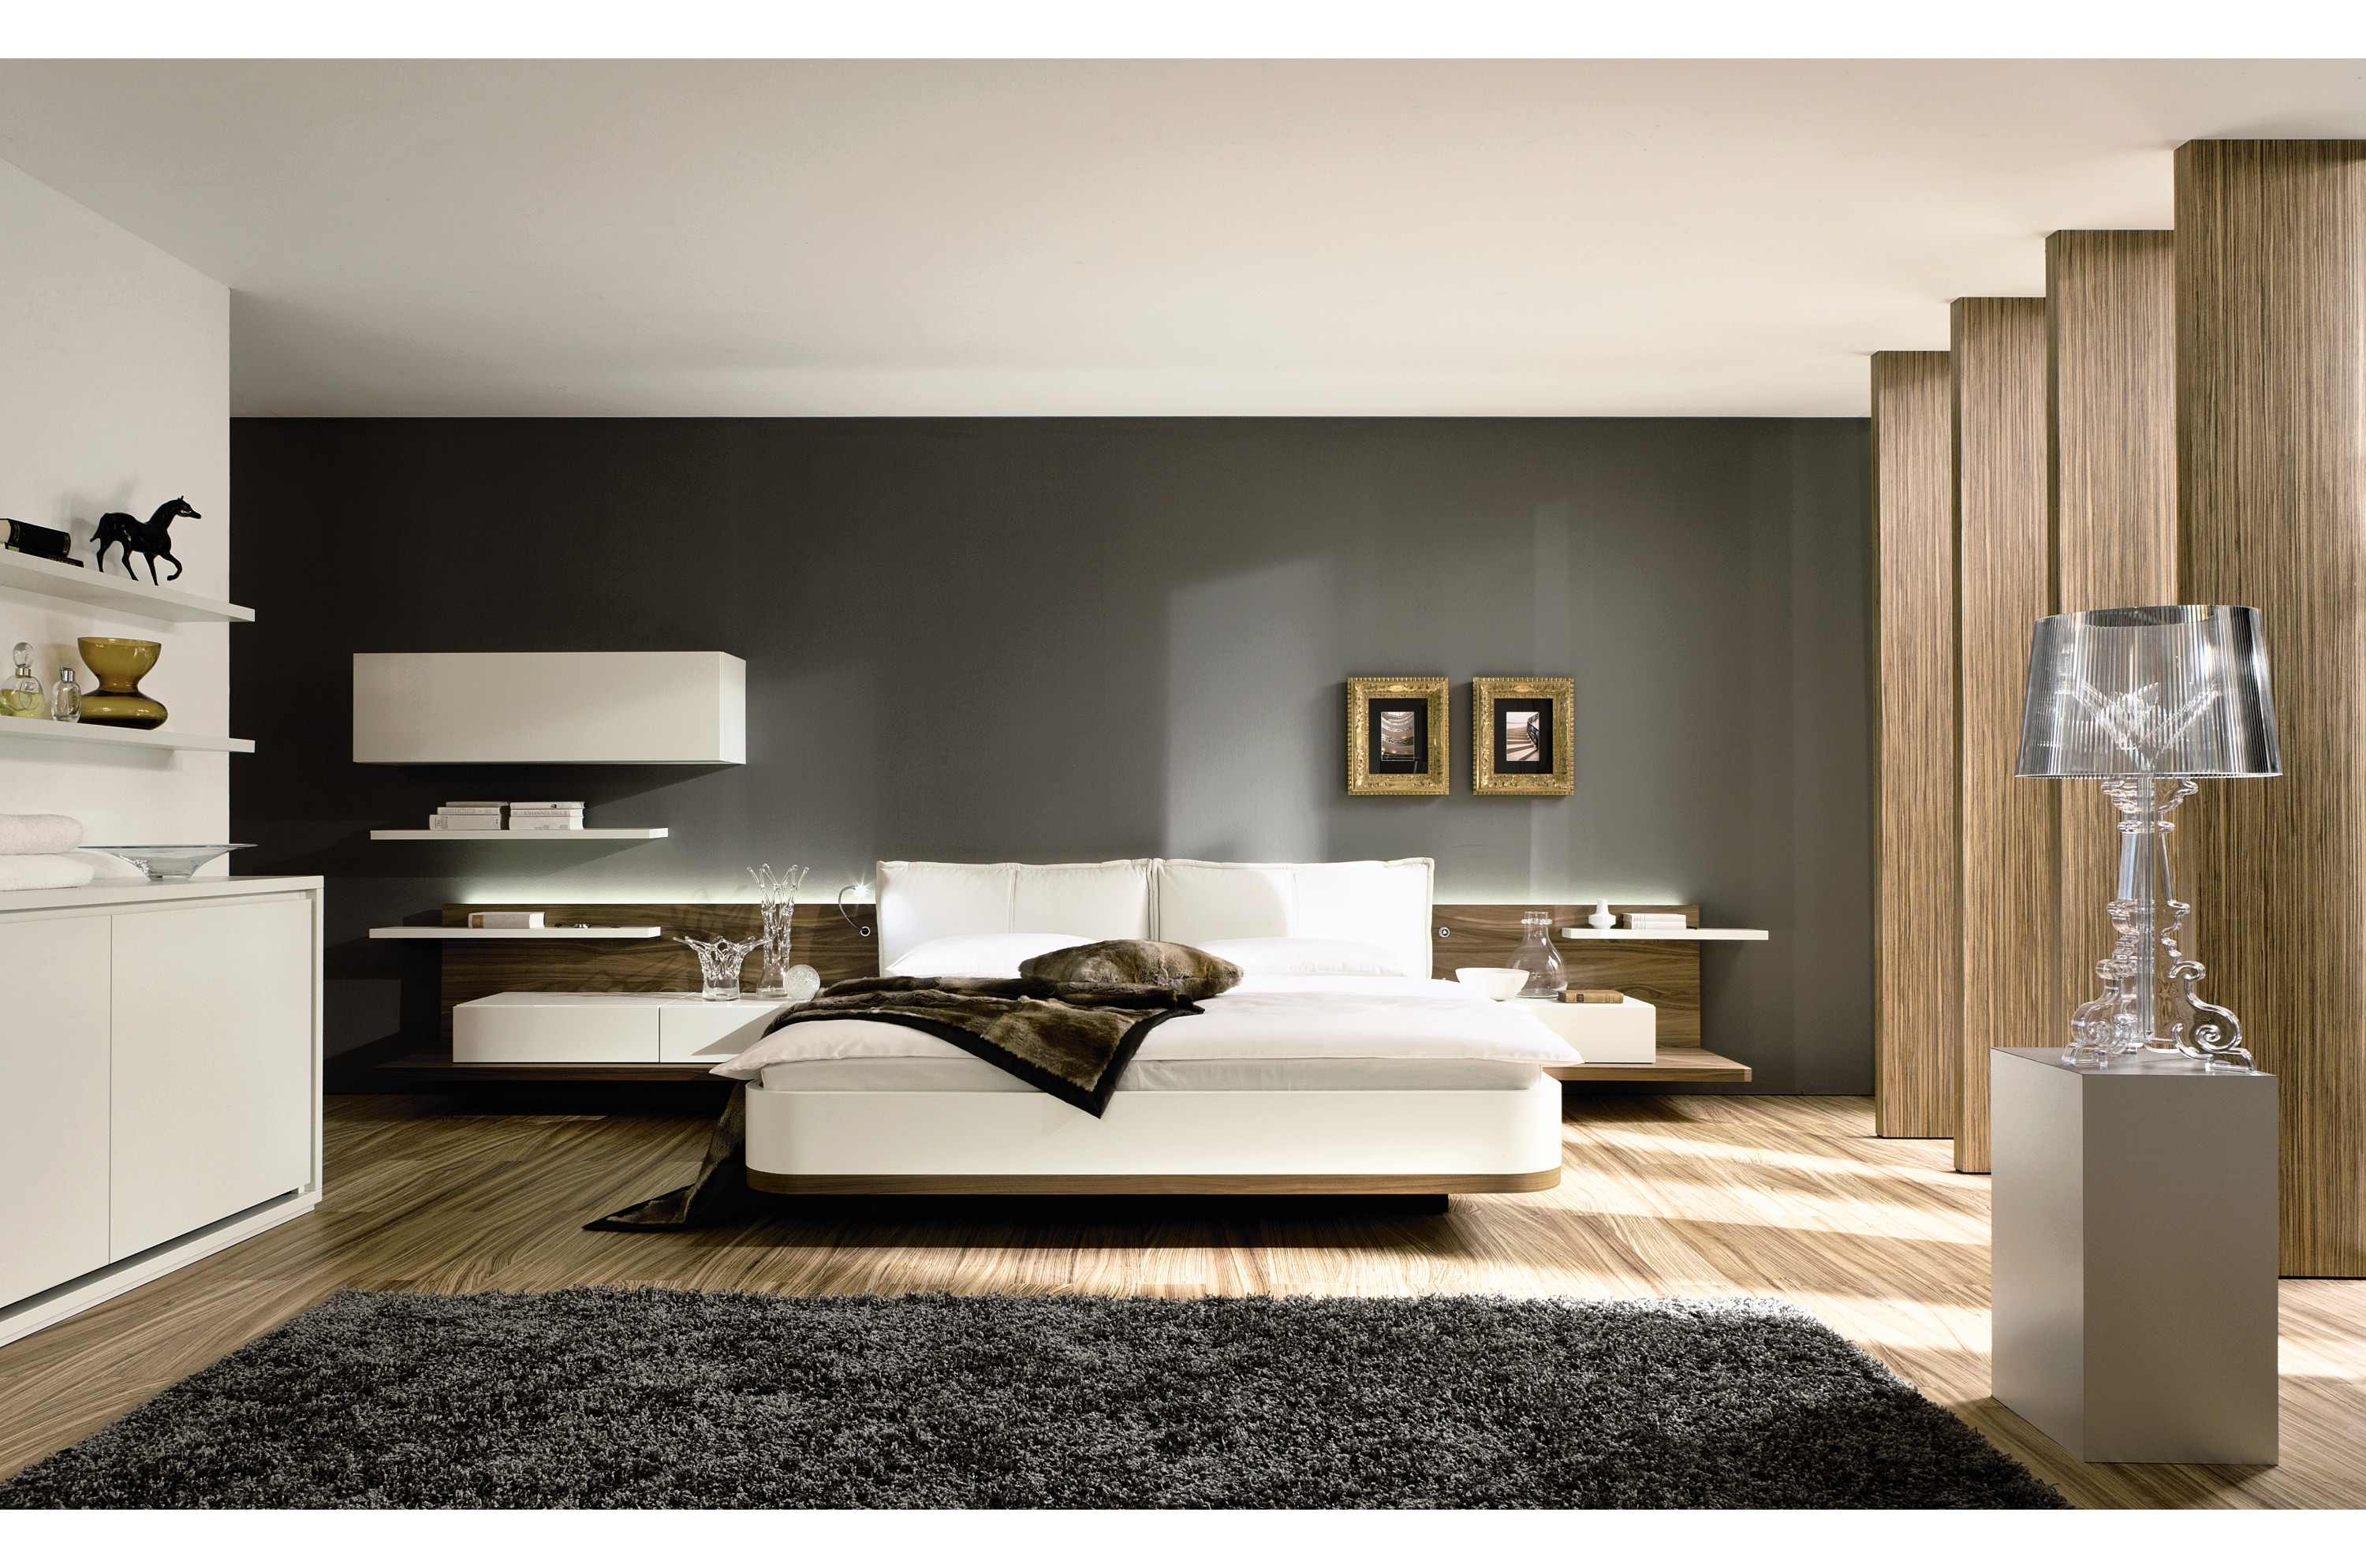 Modern bedroom innovation bedroom ideas interior design for Interior designs for bedrooms ideas